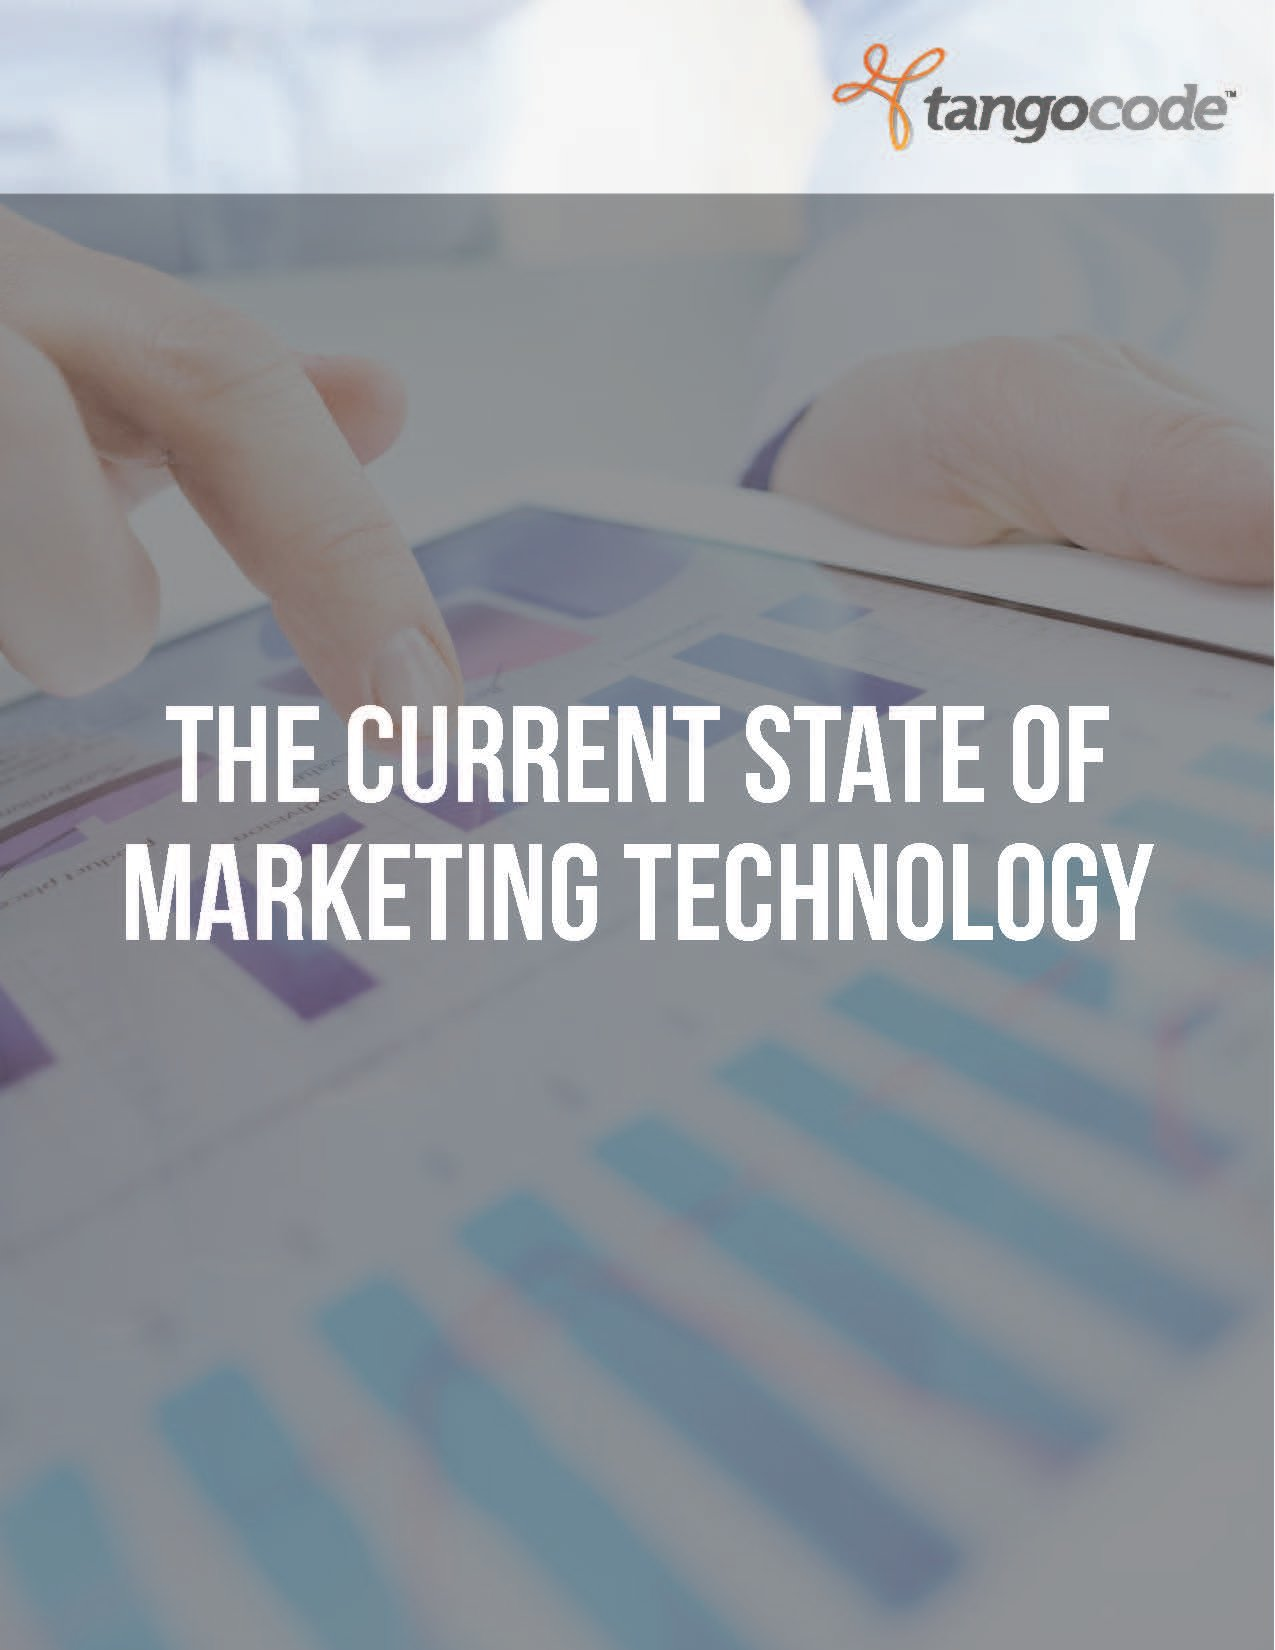 Tangocode-The-Current-State-of-Marketing-Technology-160922_Page_01.jpg